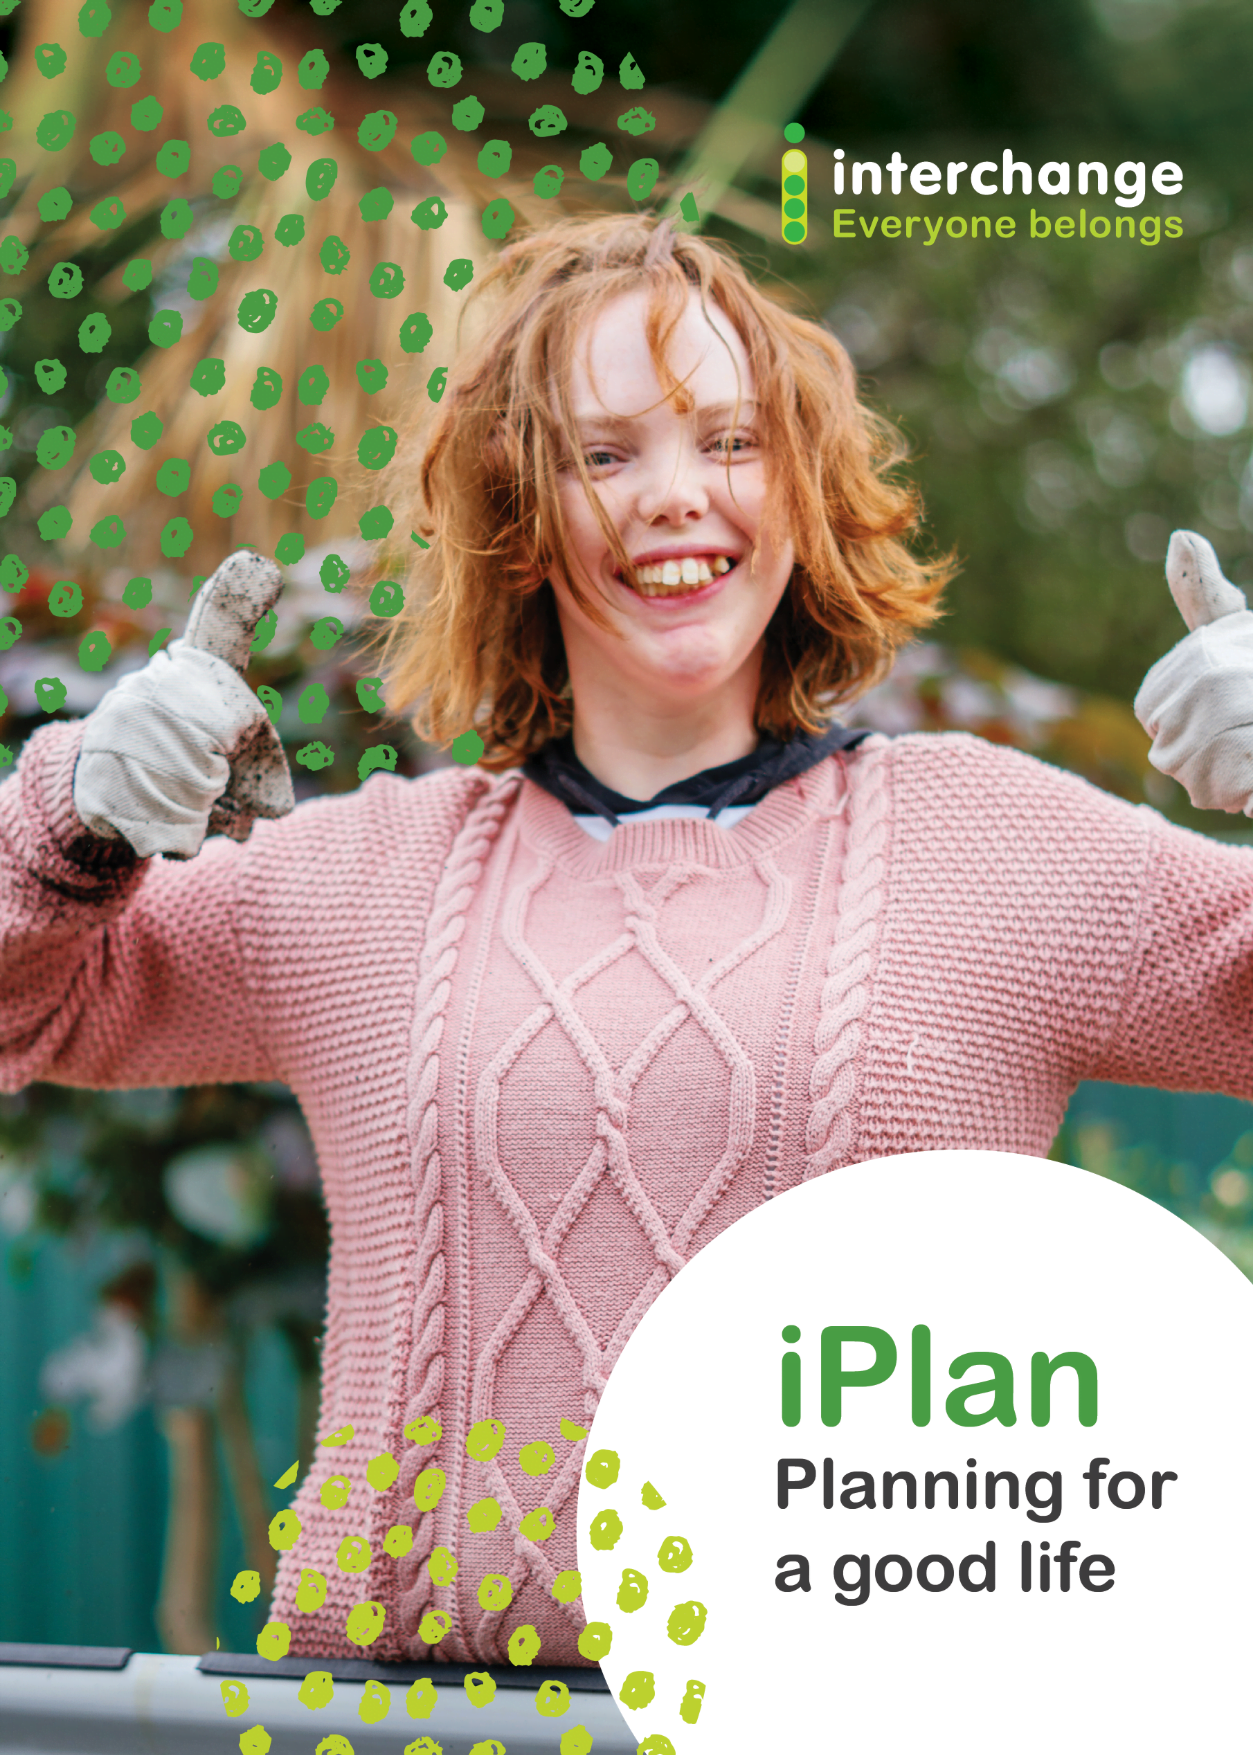 iPlan - Planning for a good life